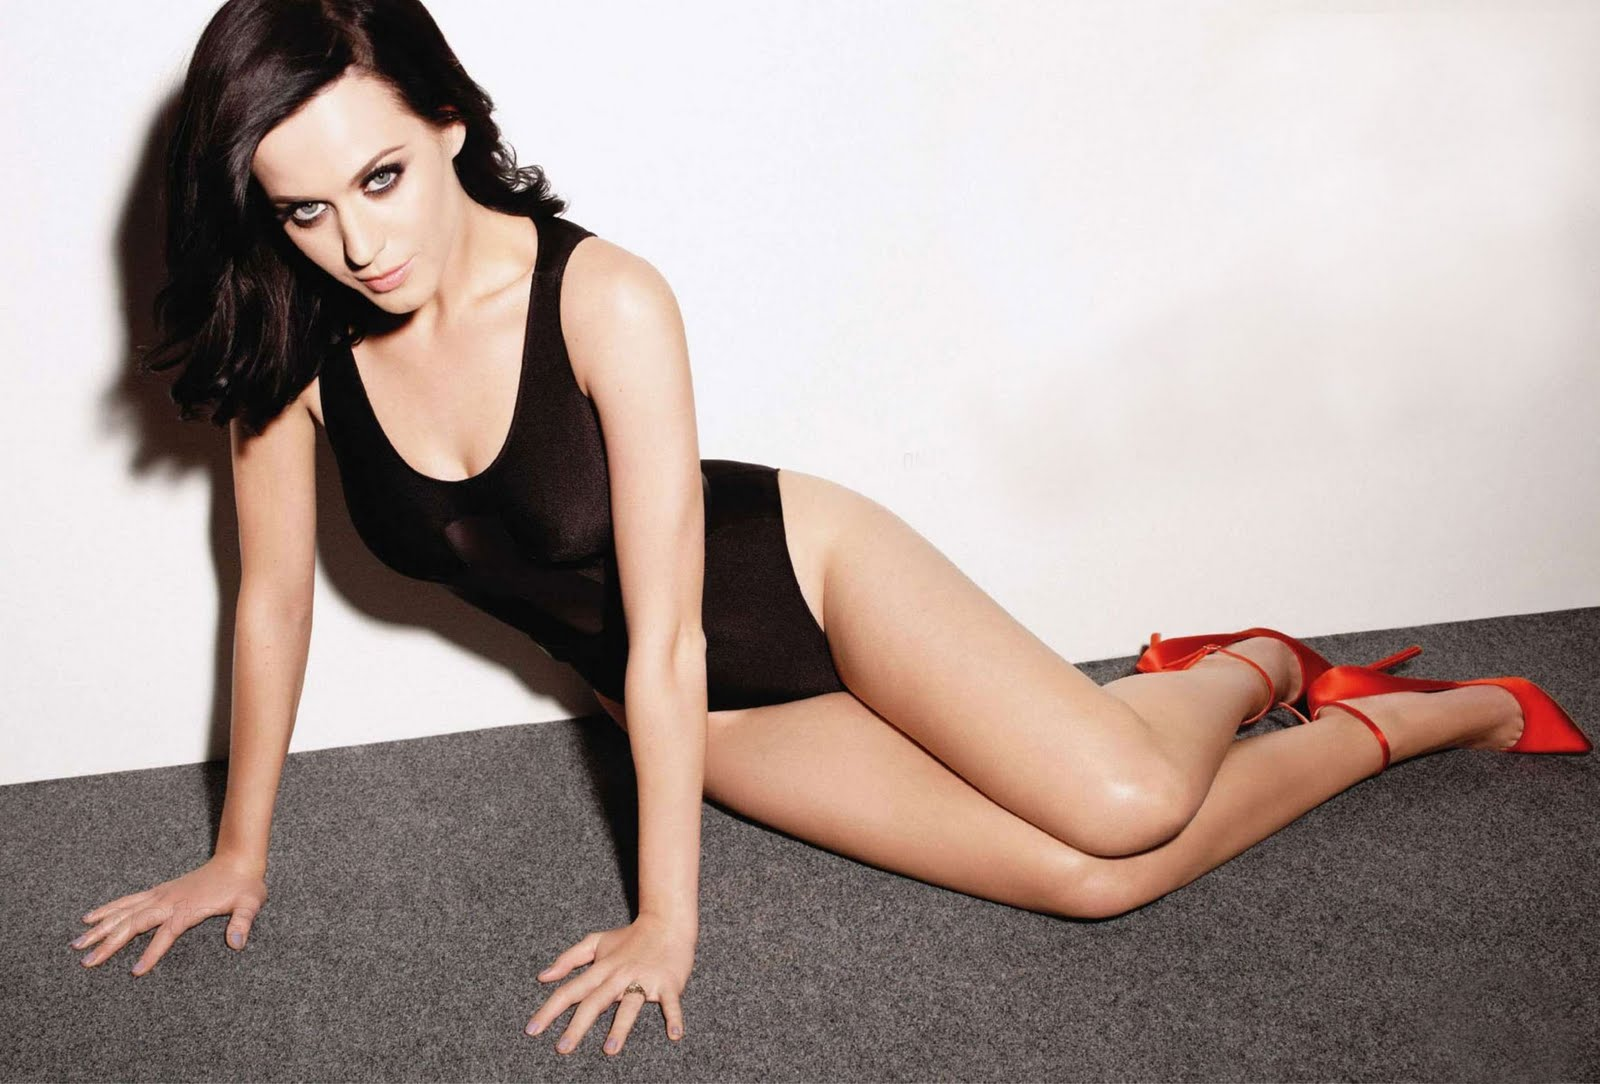 http://1.bp.blogspot.com/-tMFBN9KUOMw/TdFGEHHK4MI/AAAAAAAAC_g/e7xLyBOVHek/s1600/Katy+Perry+Maxim+Magazine+Hot+Photoshoot+January+2011.jpg